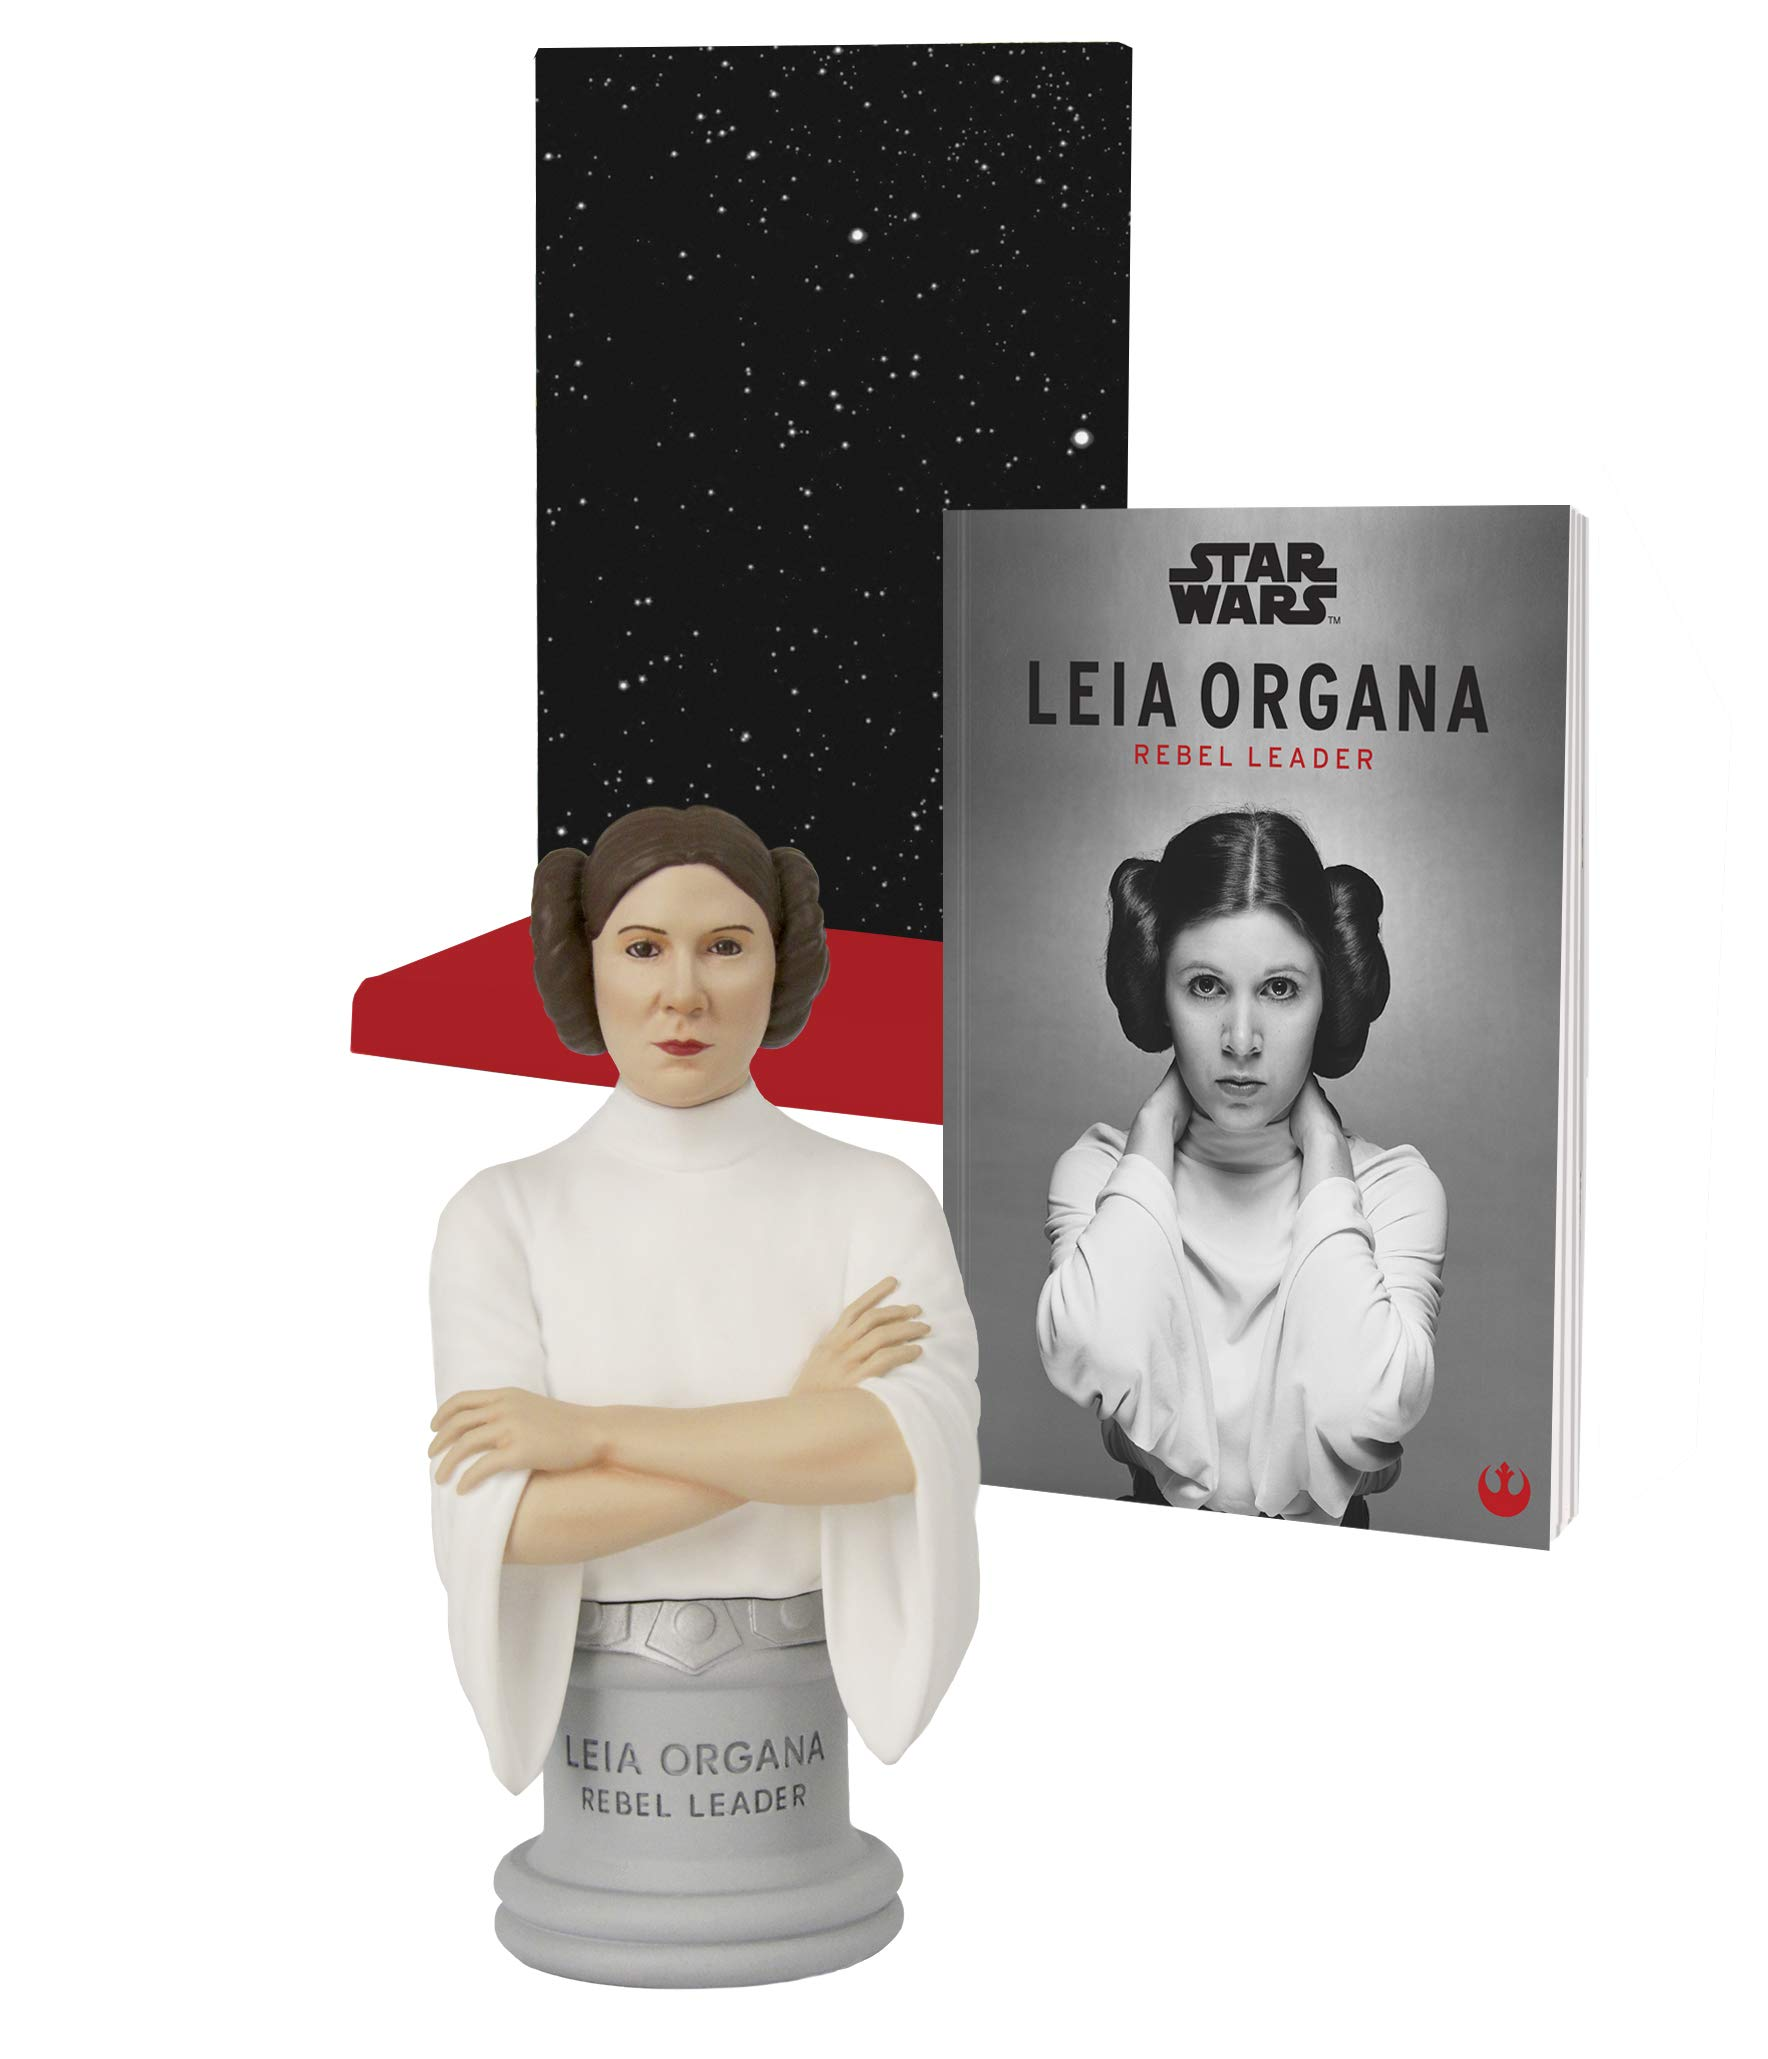 Star Wars™: Leia Organa Rebel Leader Box